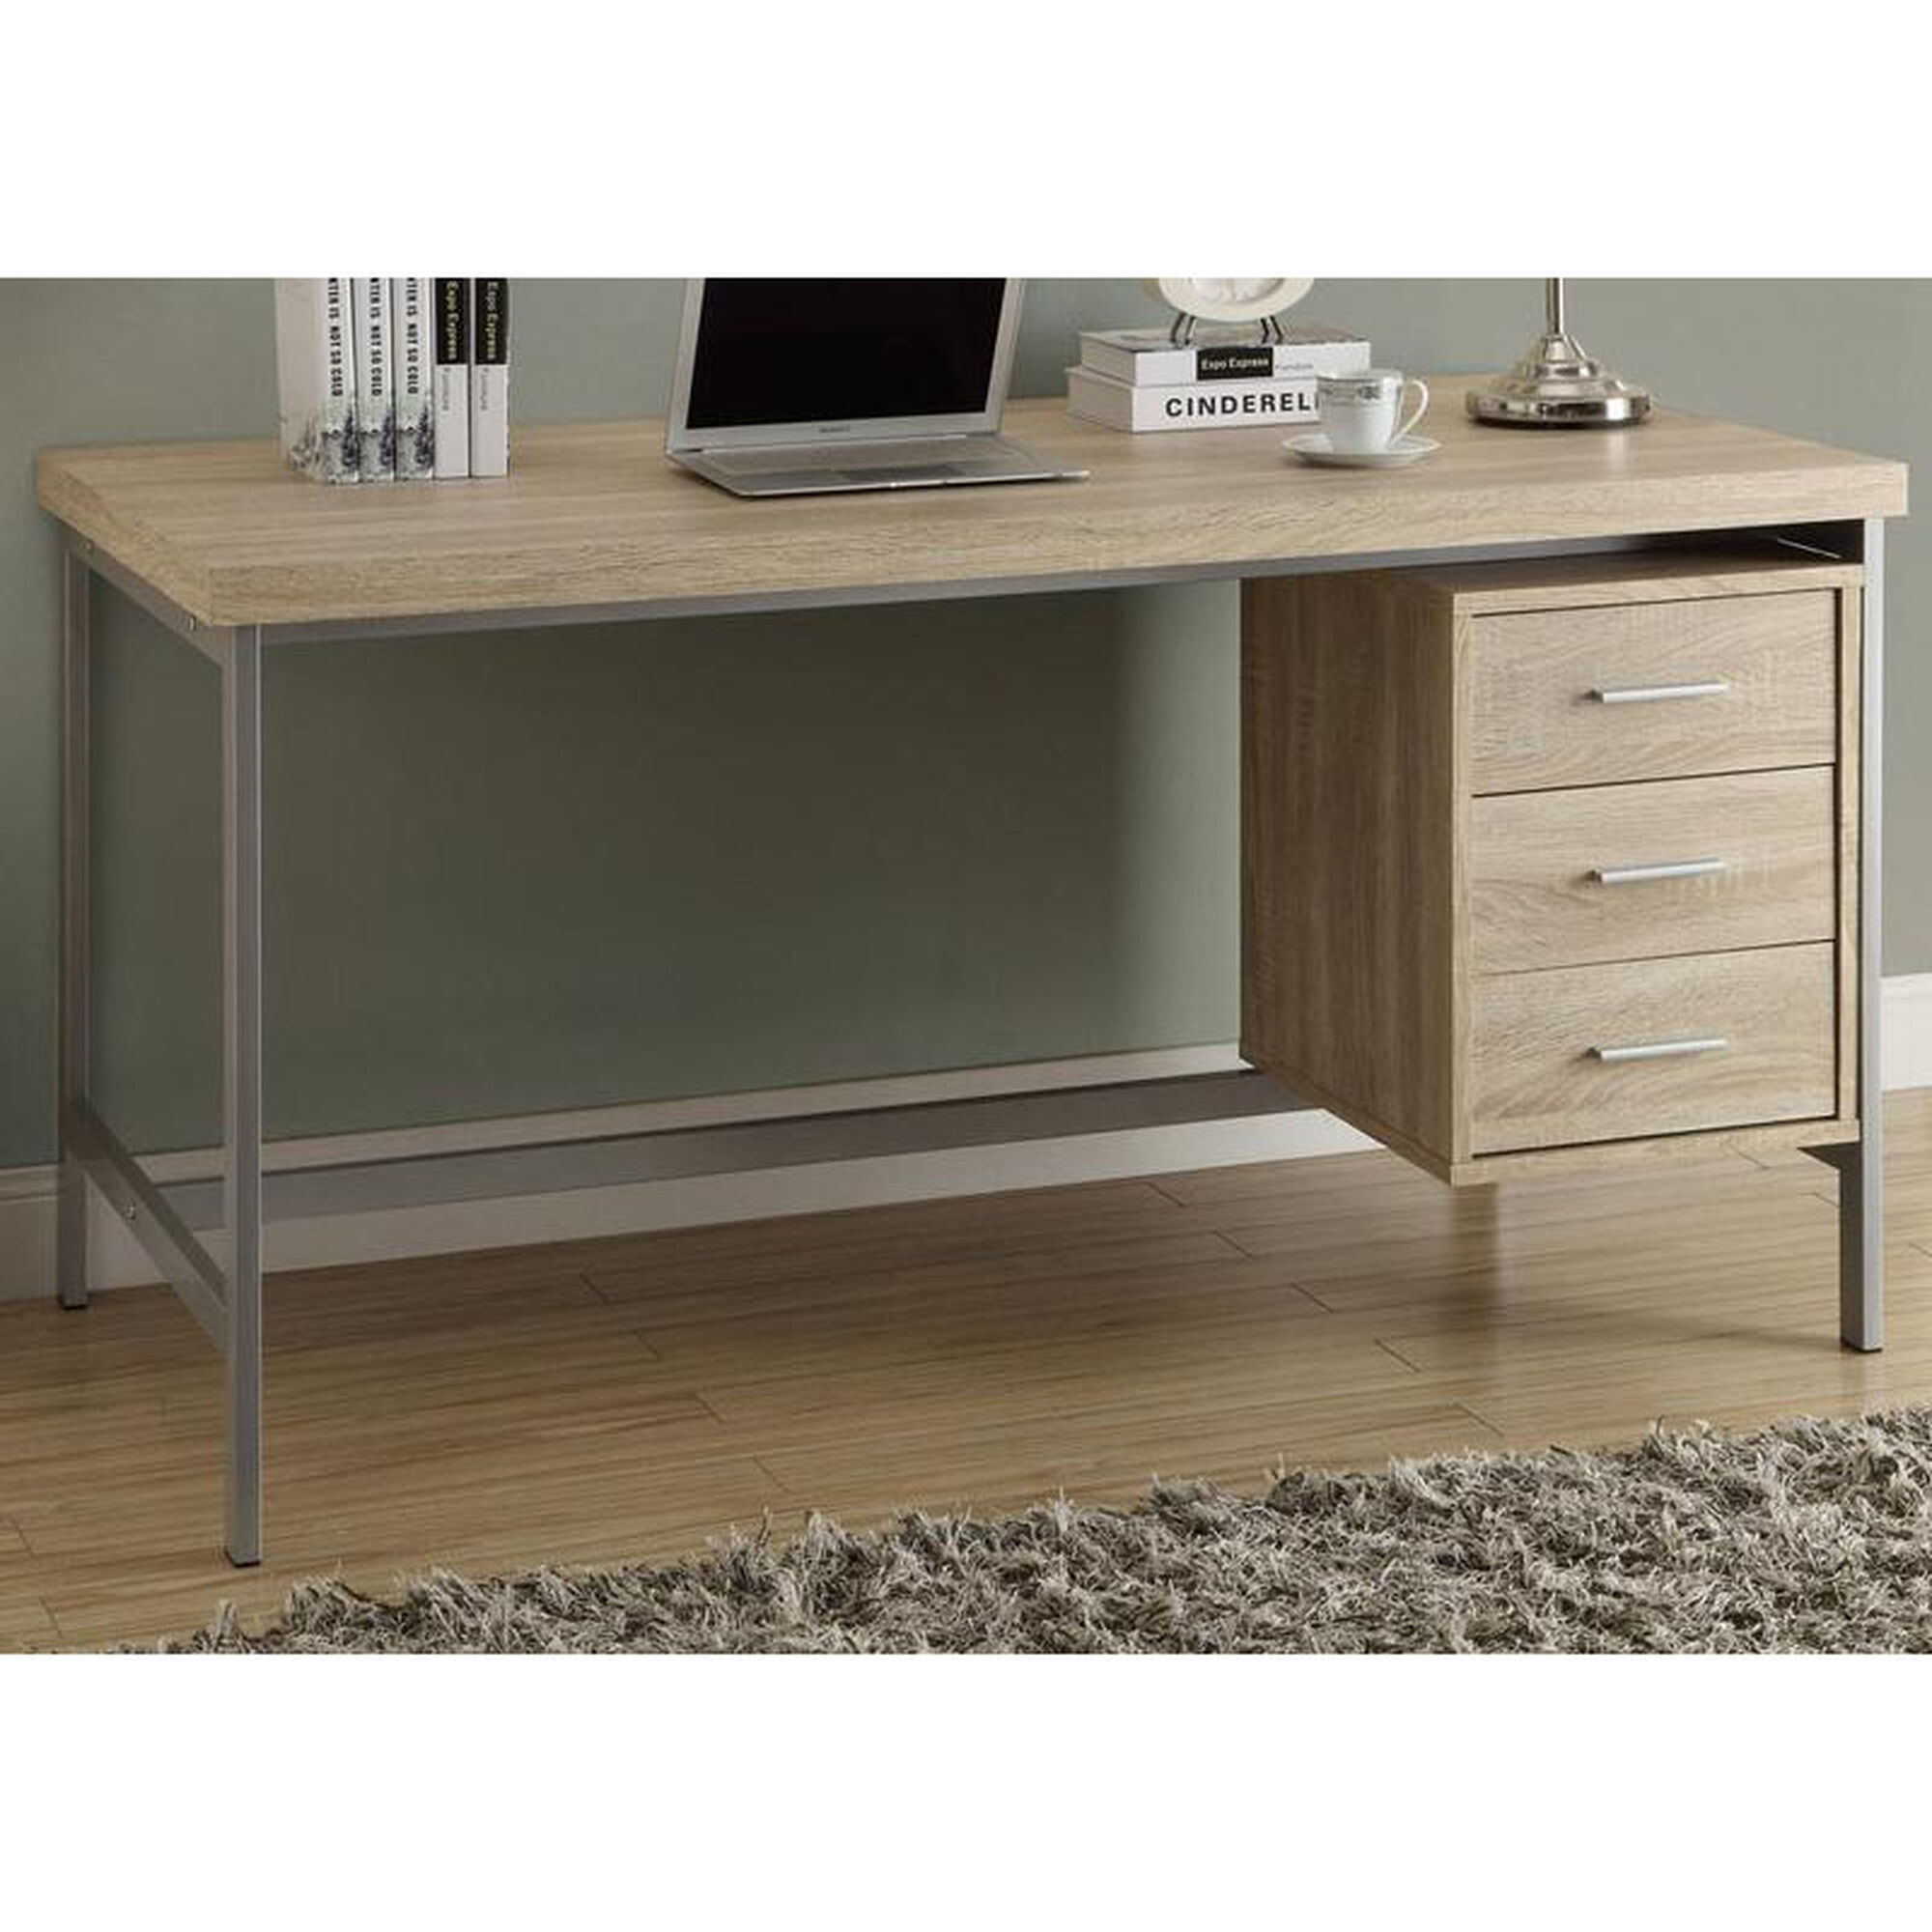 Traditional 60\'\'W Home Office Desk with Three Drawers - Natural